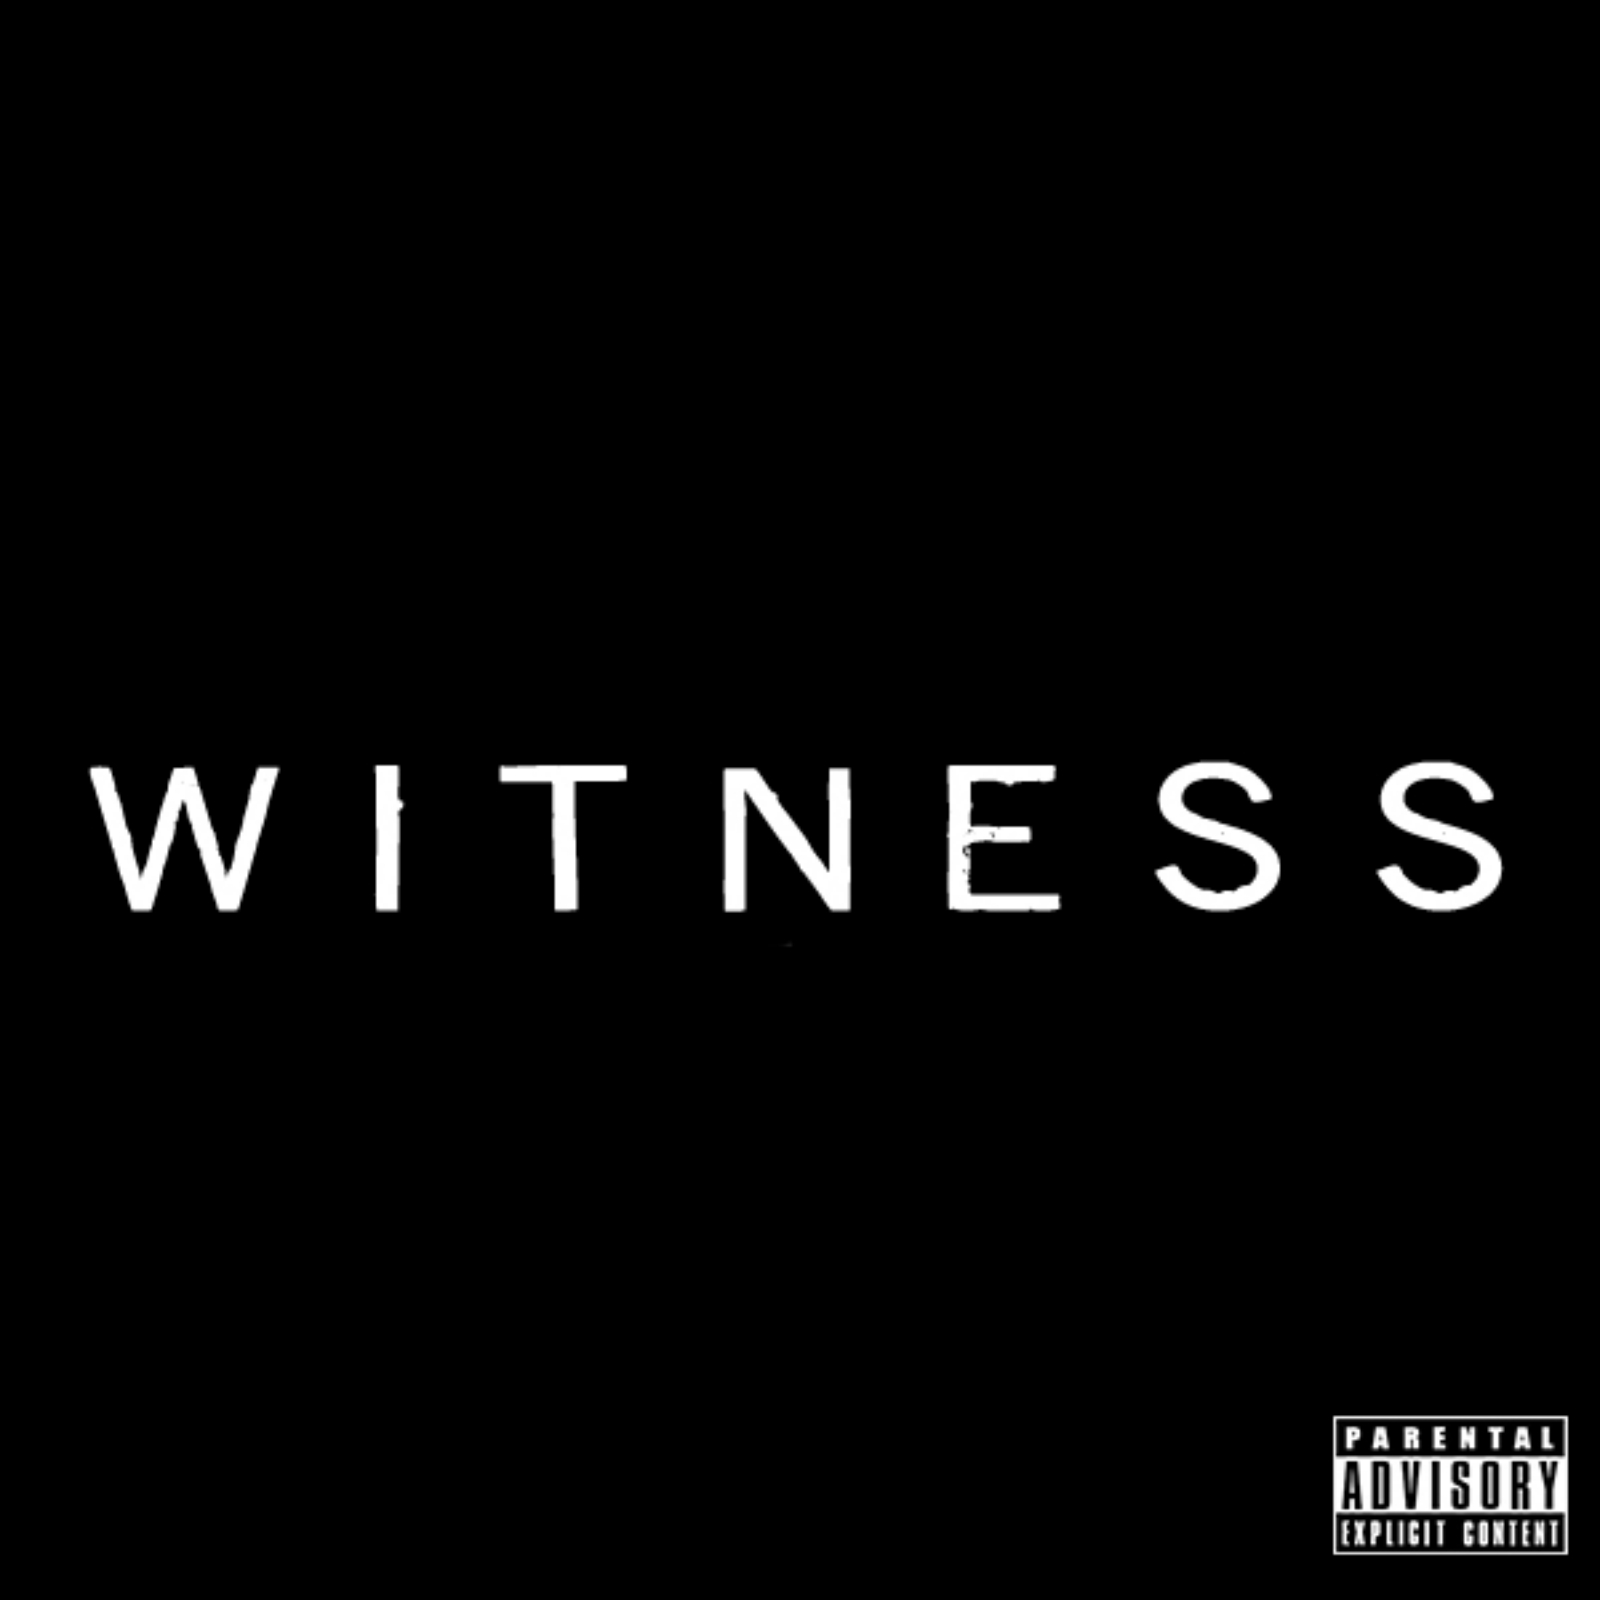 Witness Album Art.jpg